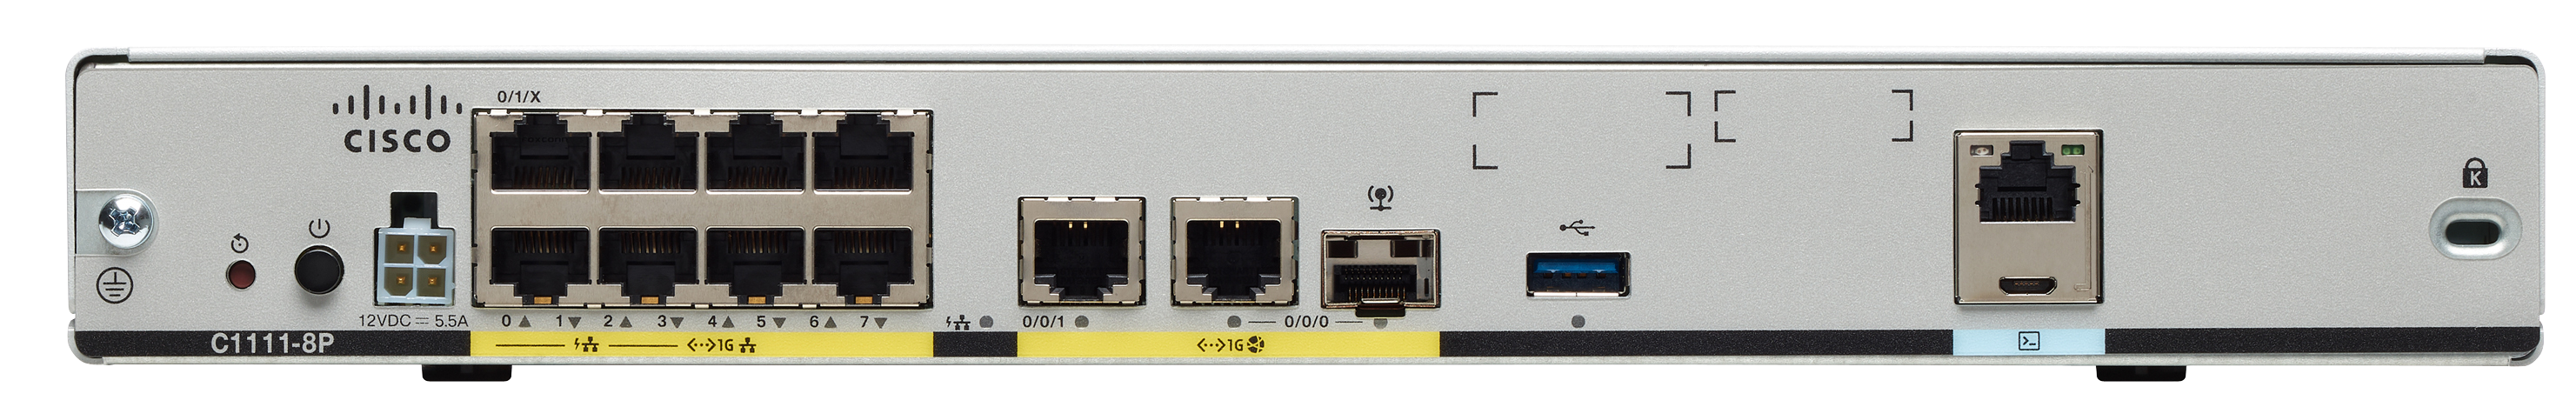 C1111-8P vs  C891F-K9 – Router Switch Blog